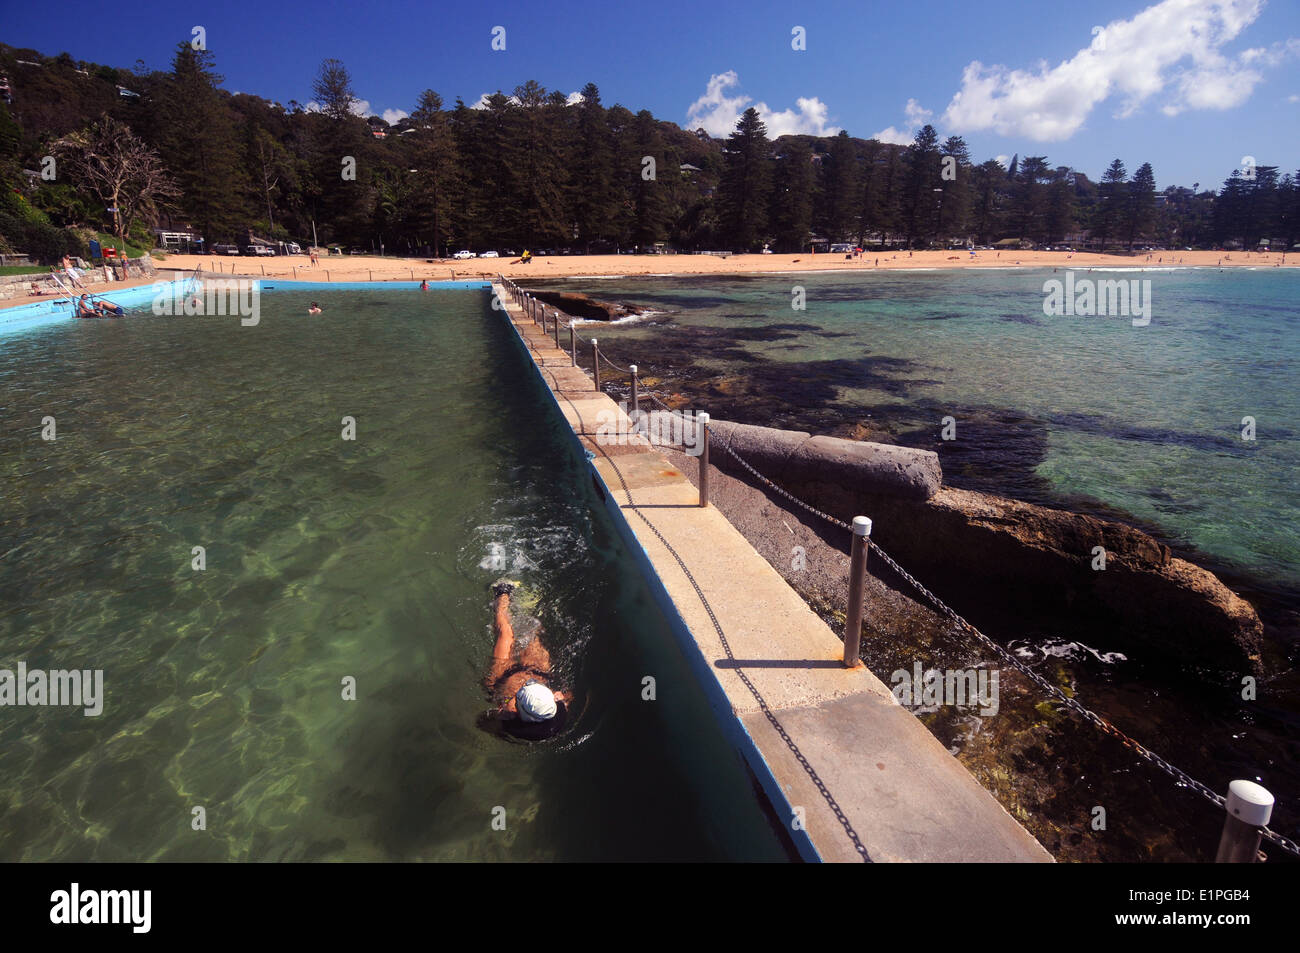 Woman swimming in rockpool at Palm Beach, northern beaches of Sydney, NSW, Australia. No MR - Stock Image